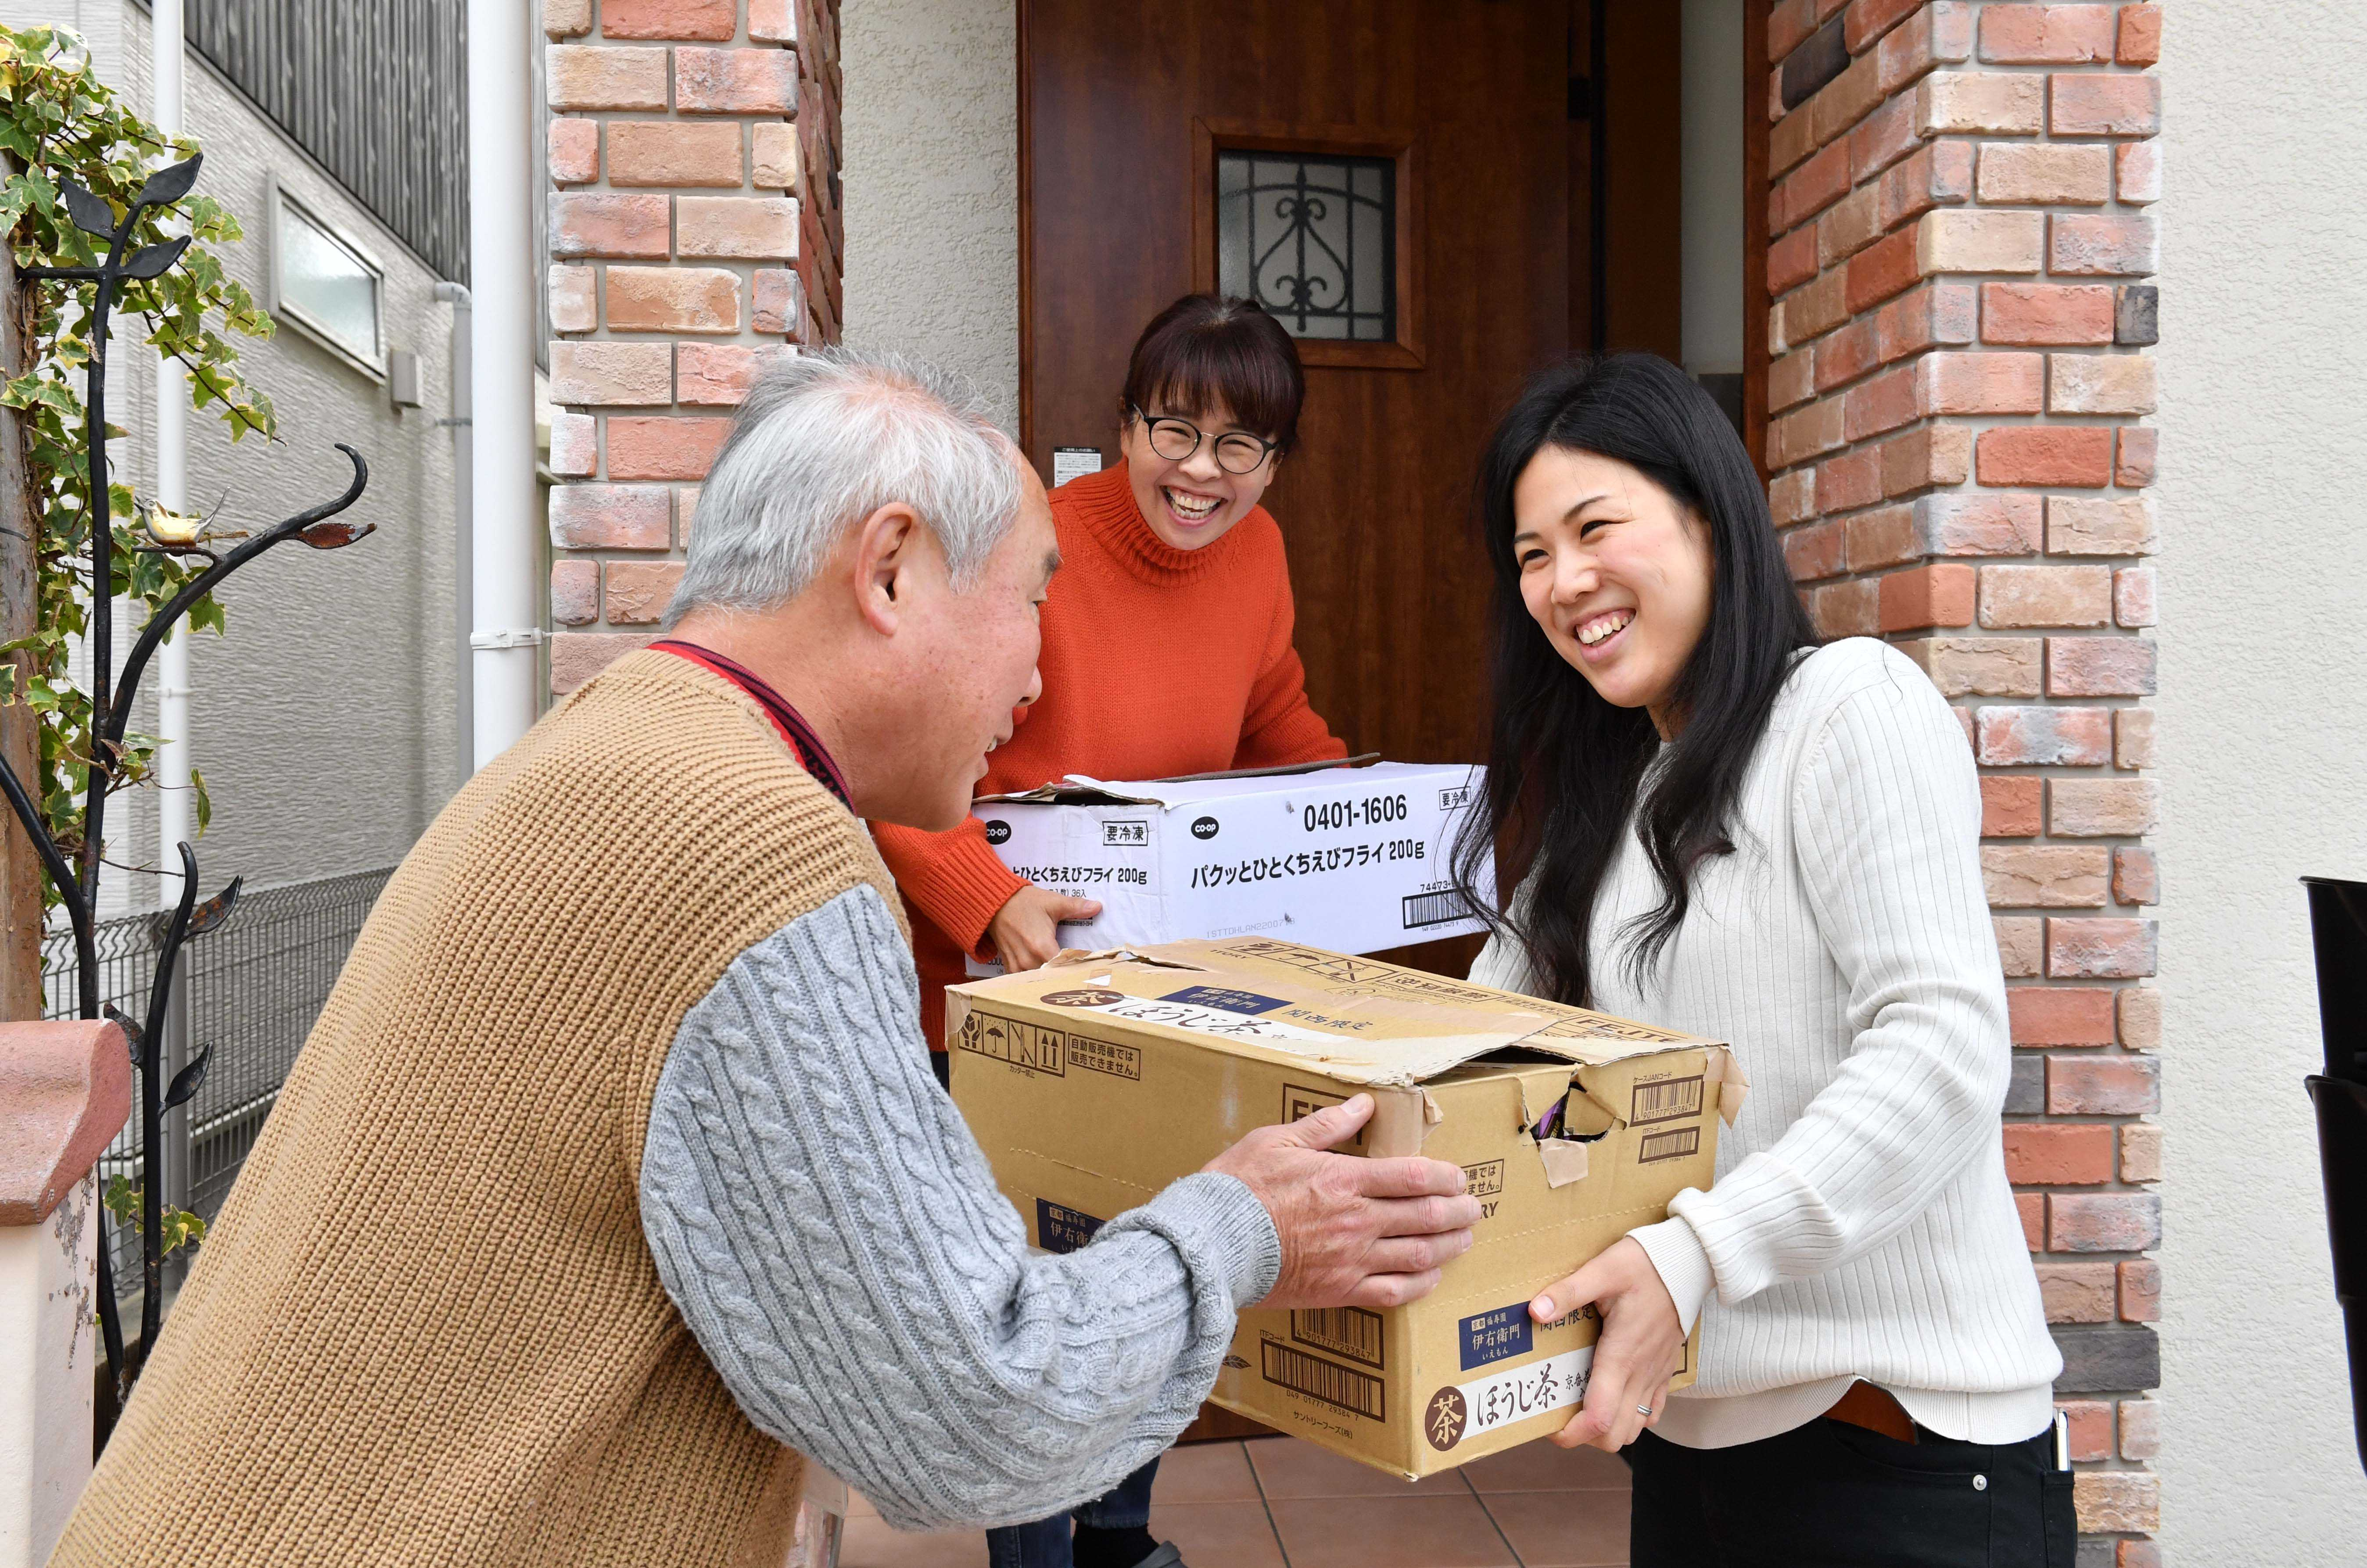 By Feeding the Needy, Ponopono's Place Gives Food Waste A New Mission8